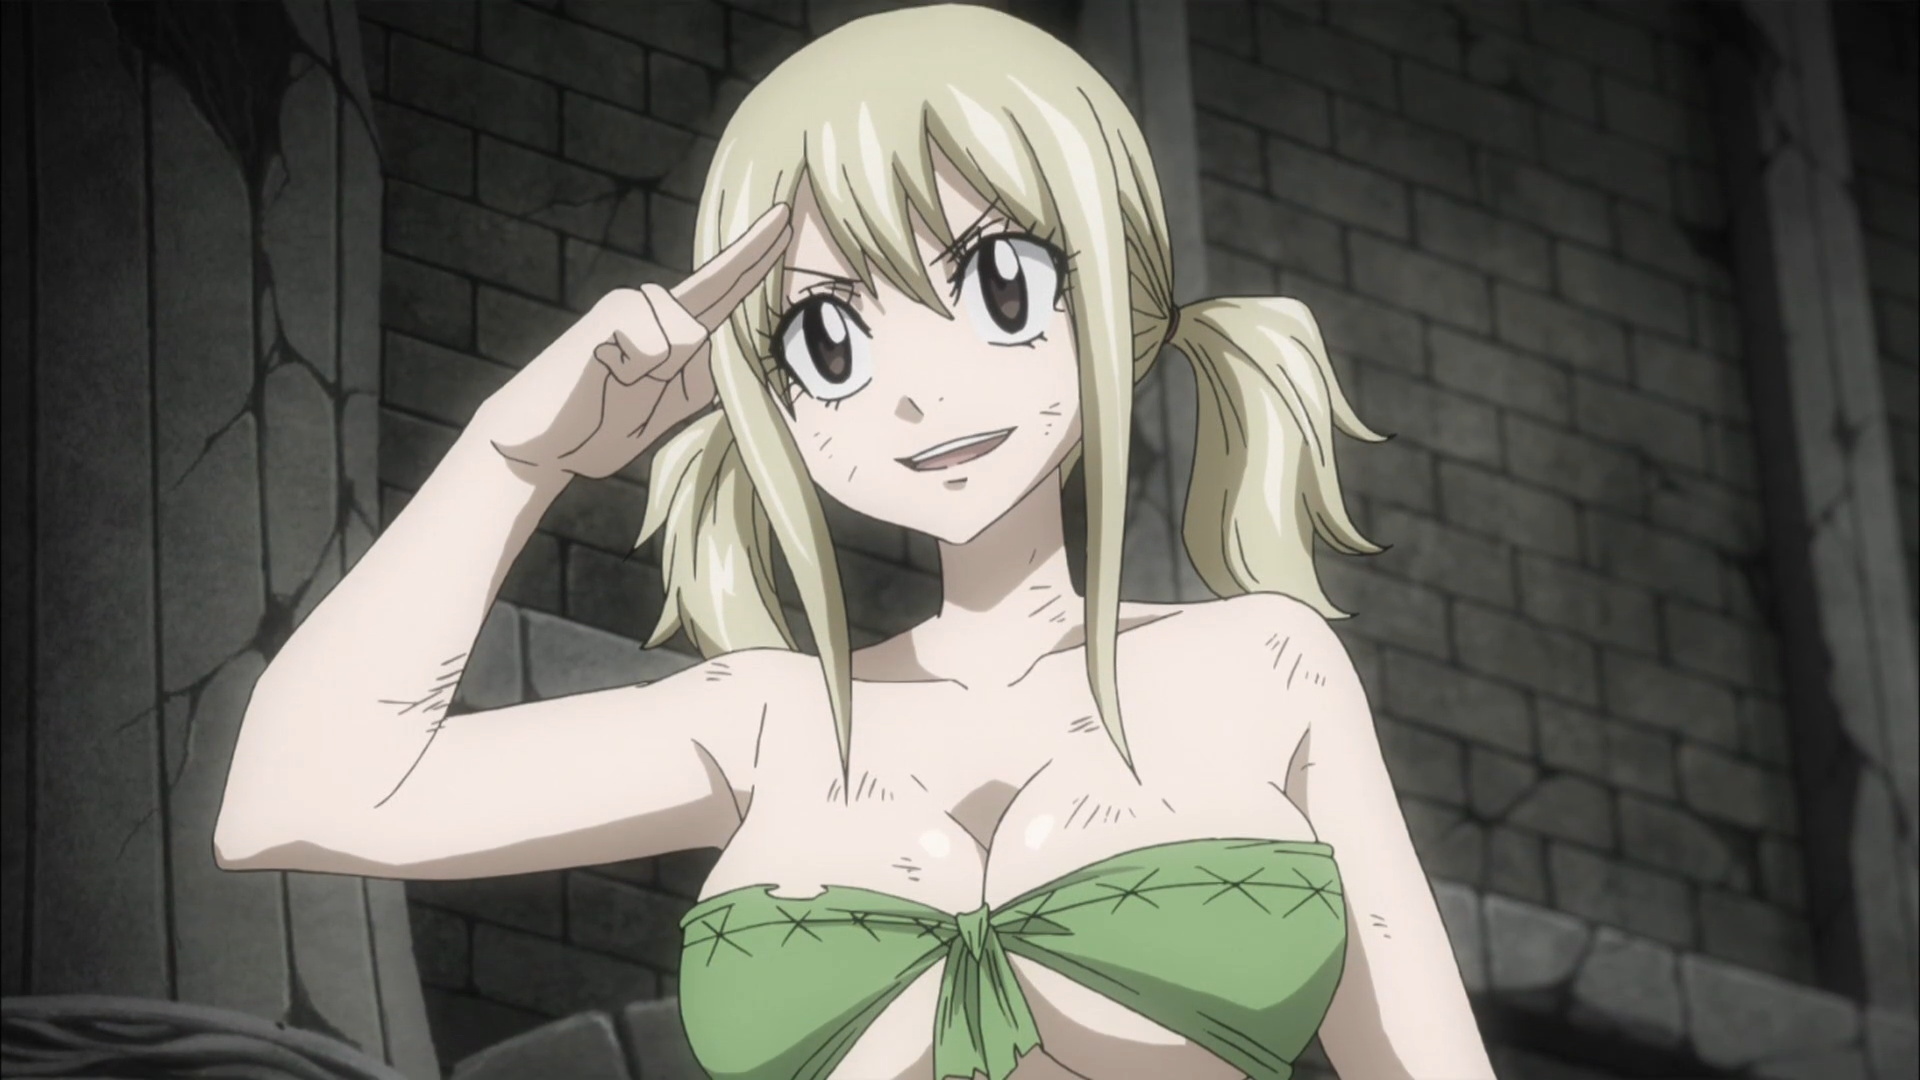 [HorribleSubs] Fairy Tail S2 - 72 [1080p]_001_25270